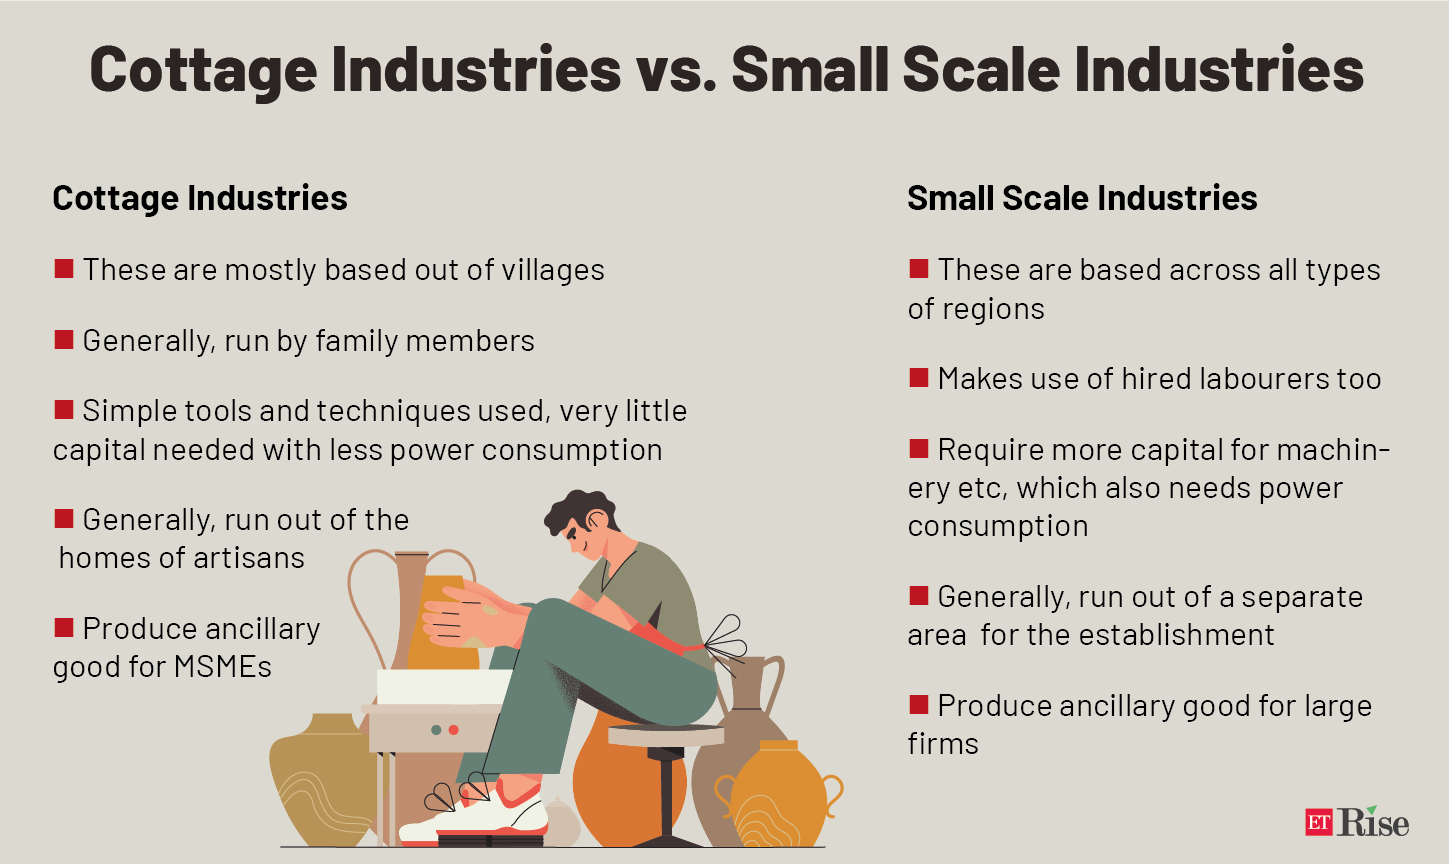 Cottage Industries vs. Small Scale Industries@2x